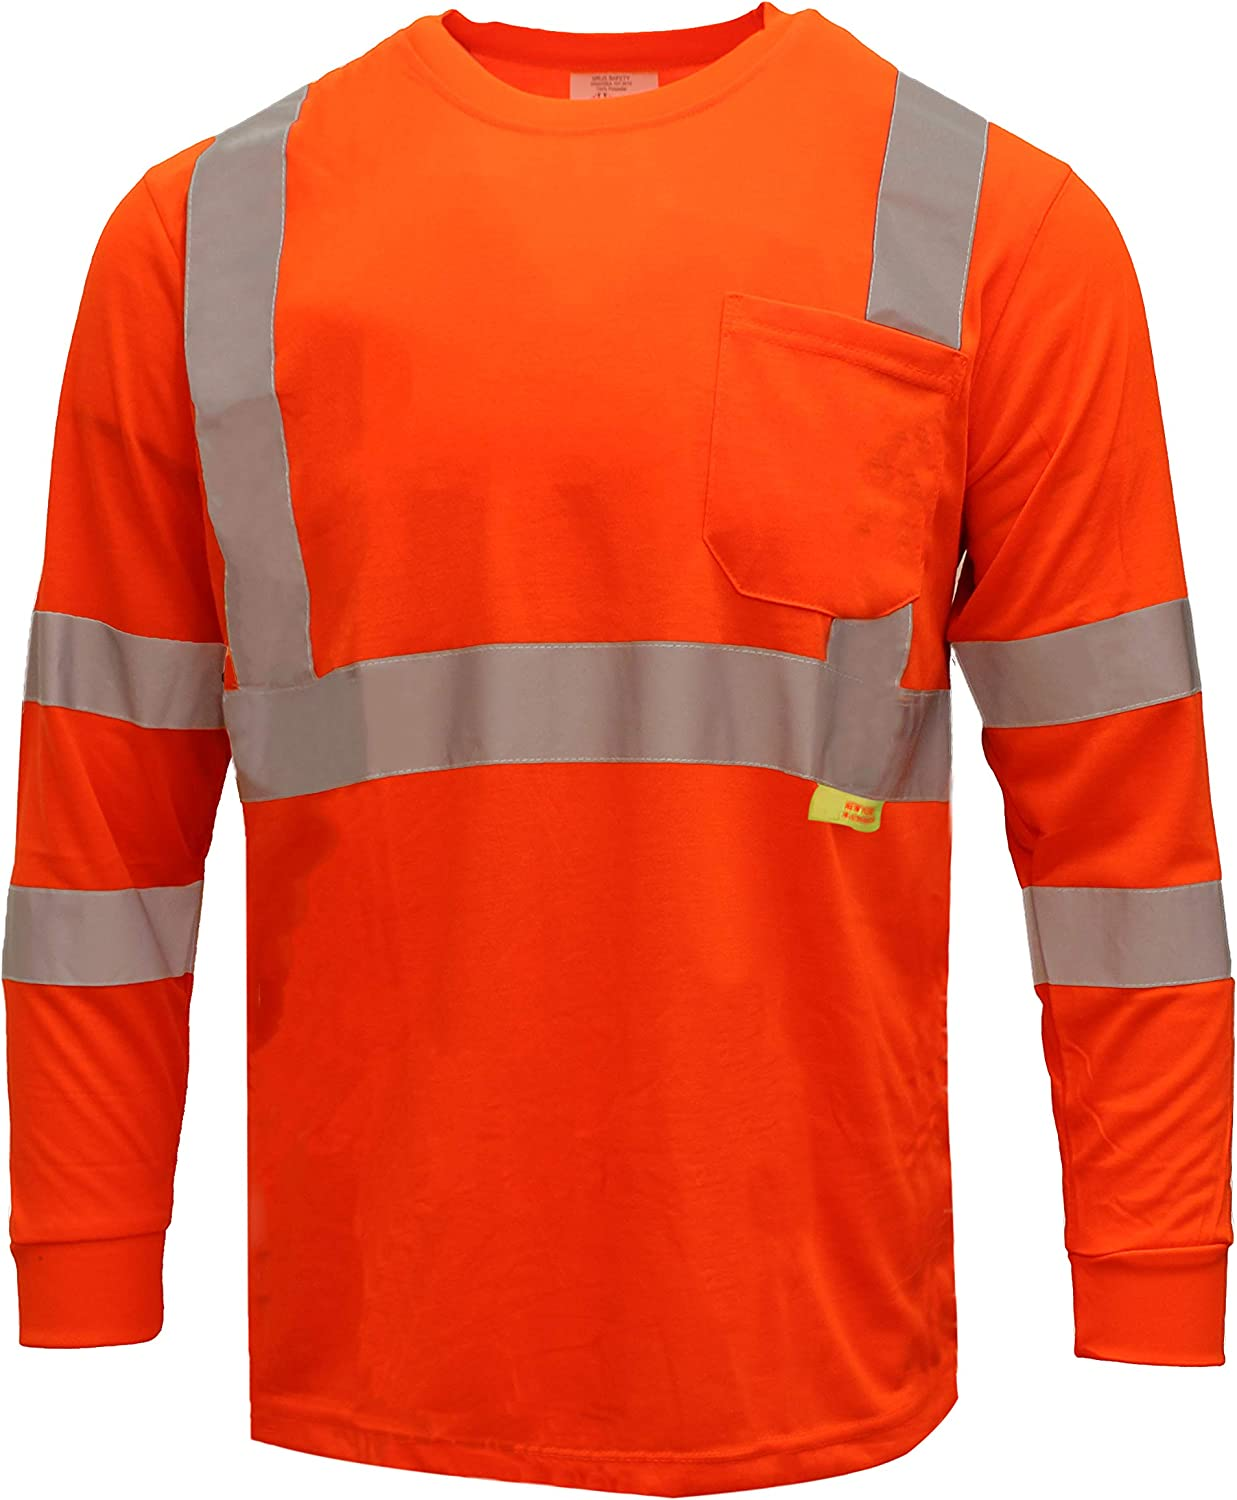 Kansas City Mall NY Hi-Viz Workwear Class 3 High Sleeve Vis ANSI Long Reflective Special price for a limited time